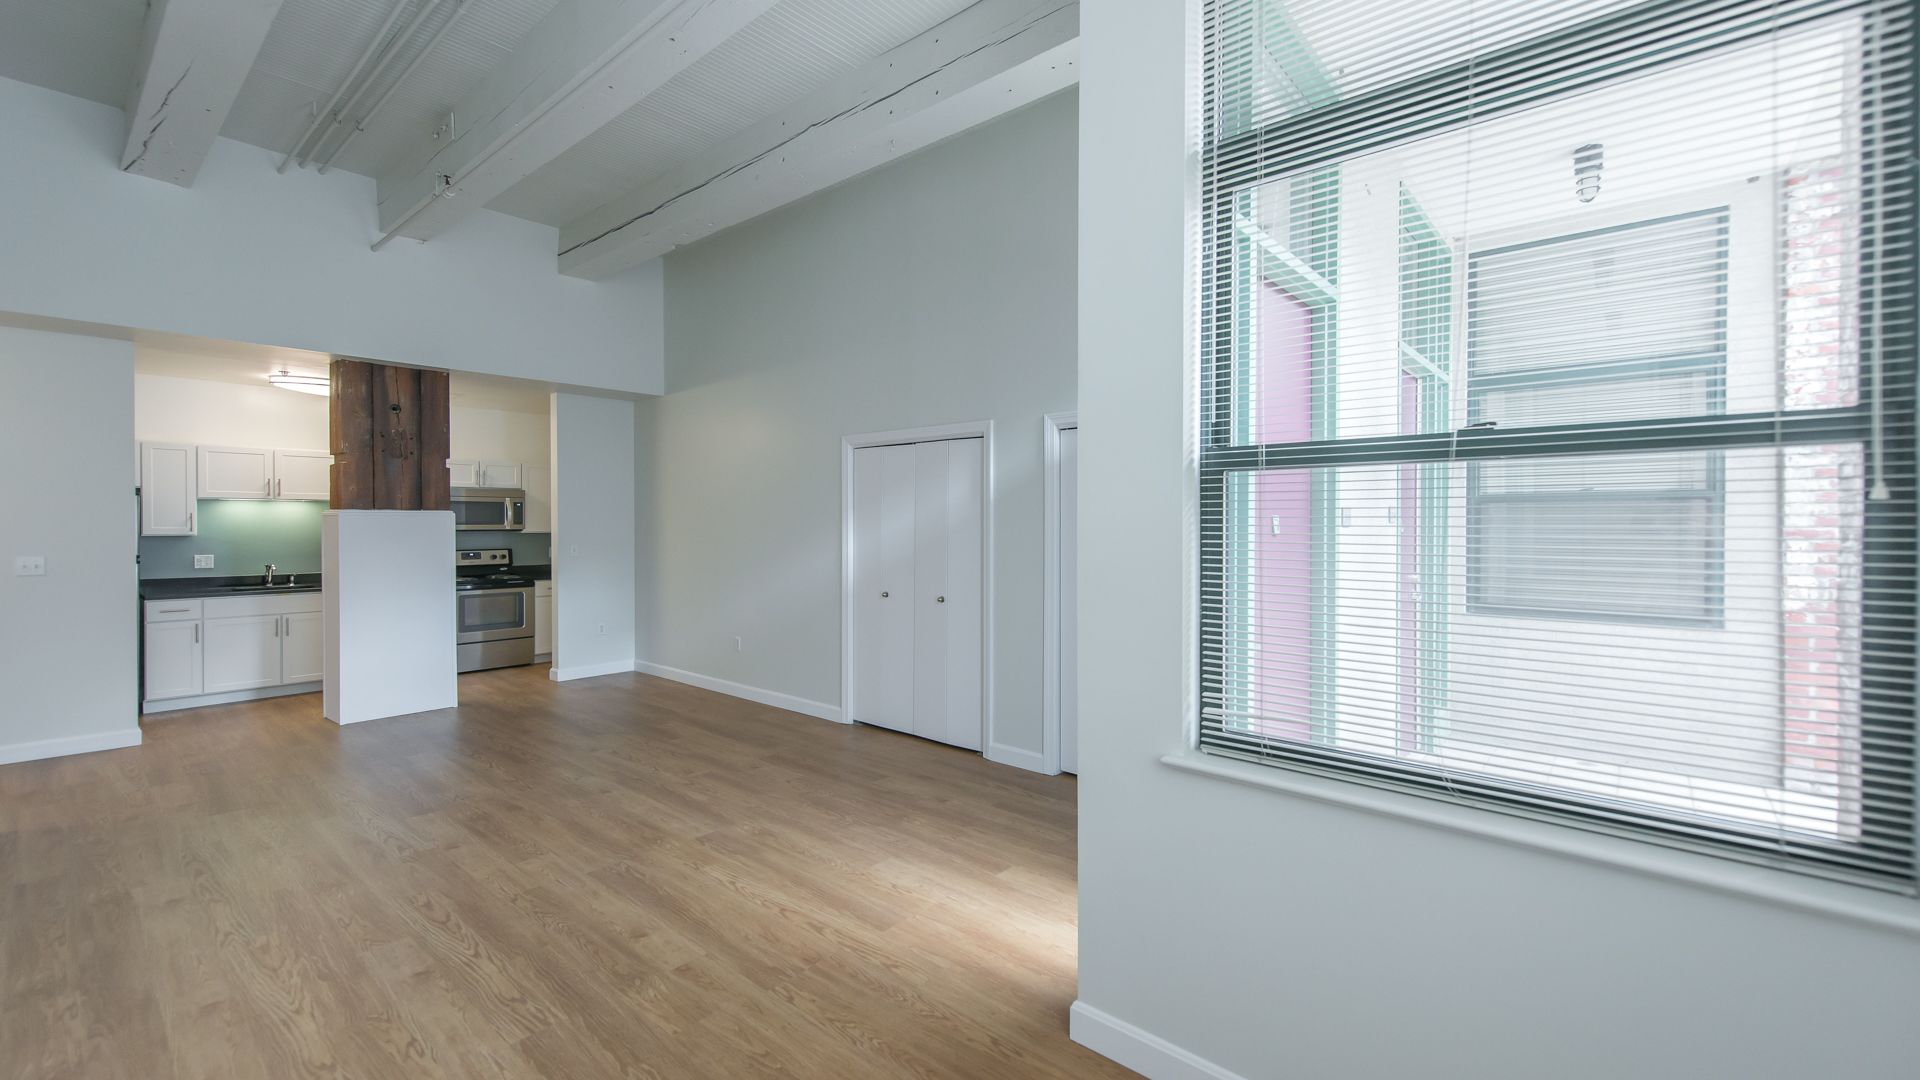 Lofts at Kendall Square Apartments - Living Area